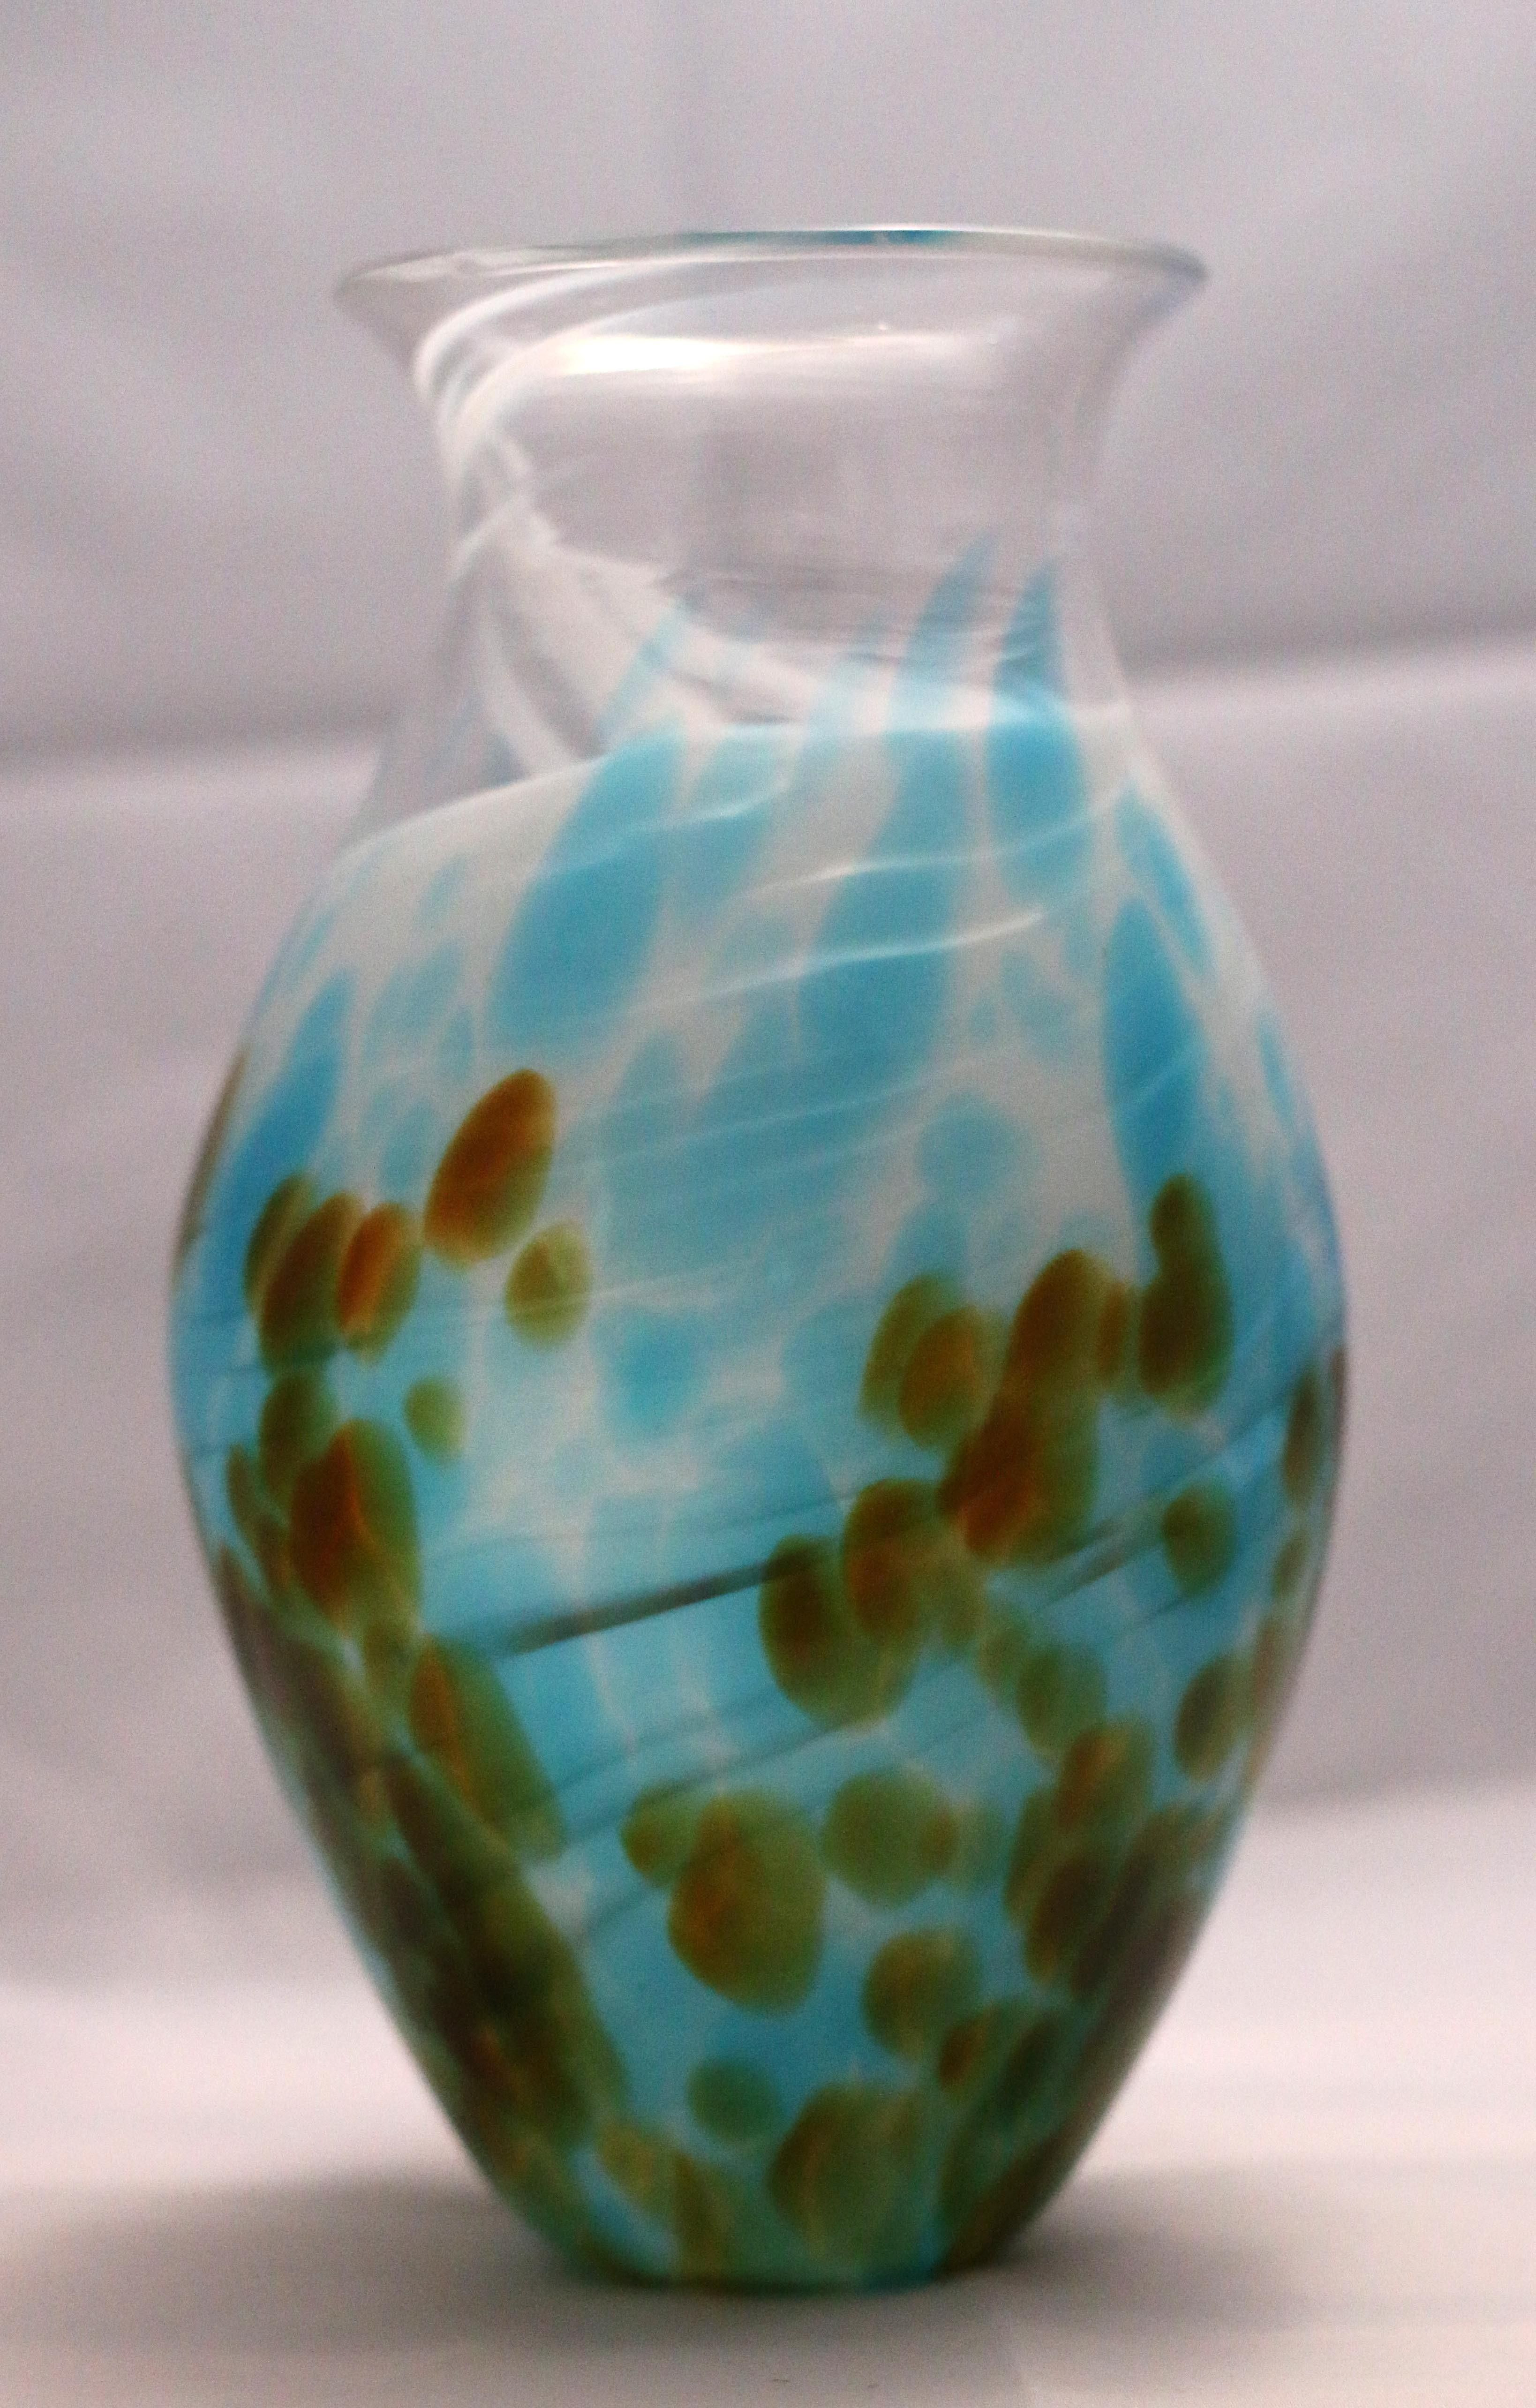 blown glass vases wholesale of 22 hobnail glass vase the weekly world regarding white milk glass vases bulk glass designs